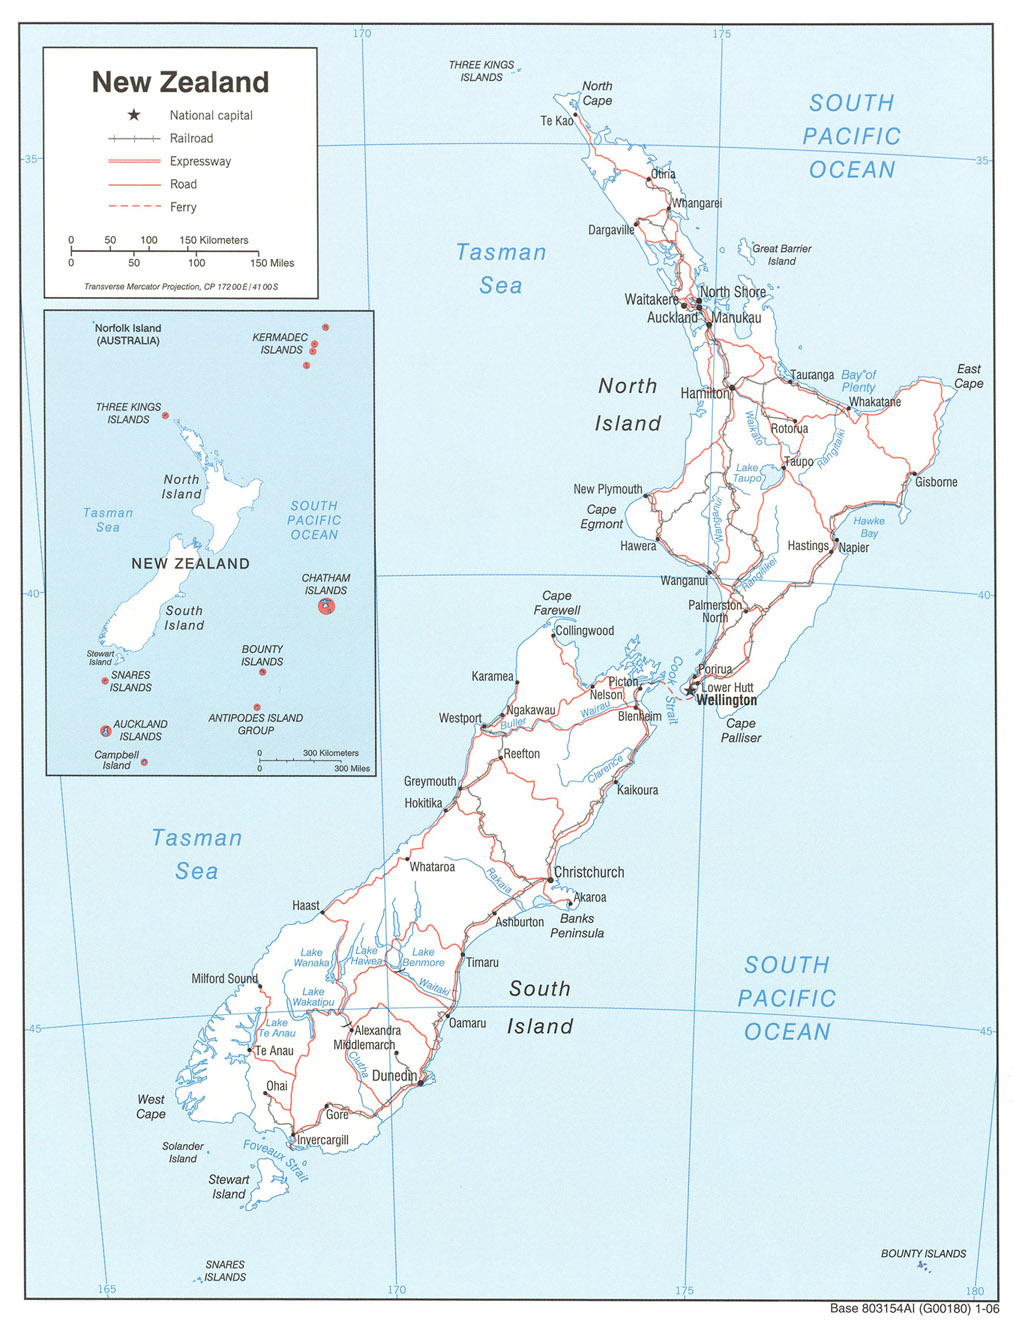 Download free new zealand auckland islands maps gumiabroncs Choice Image